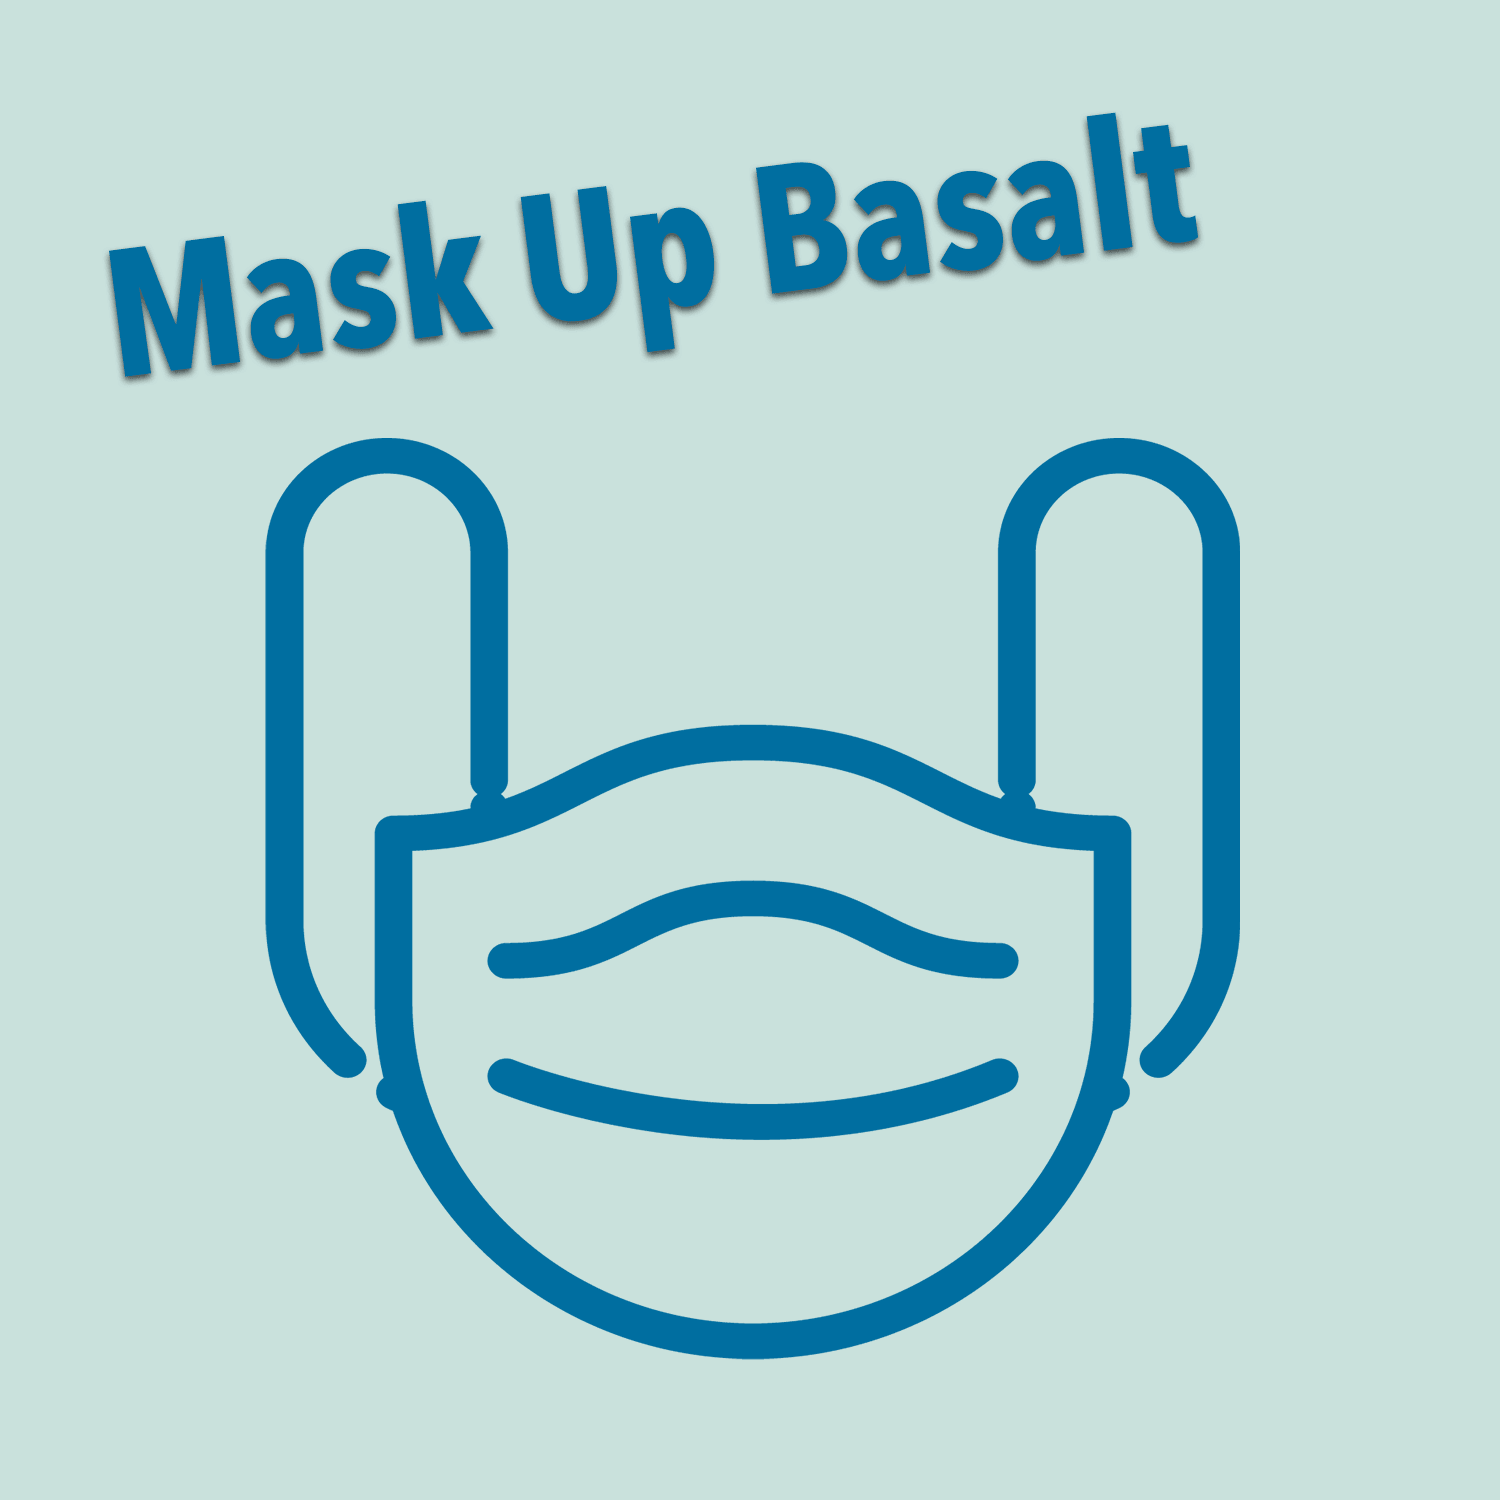 Mask Up Basalt